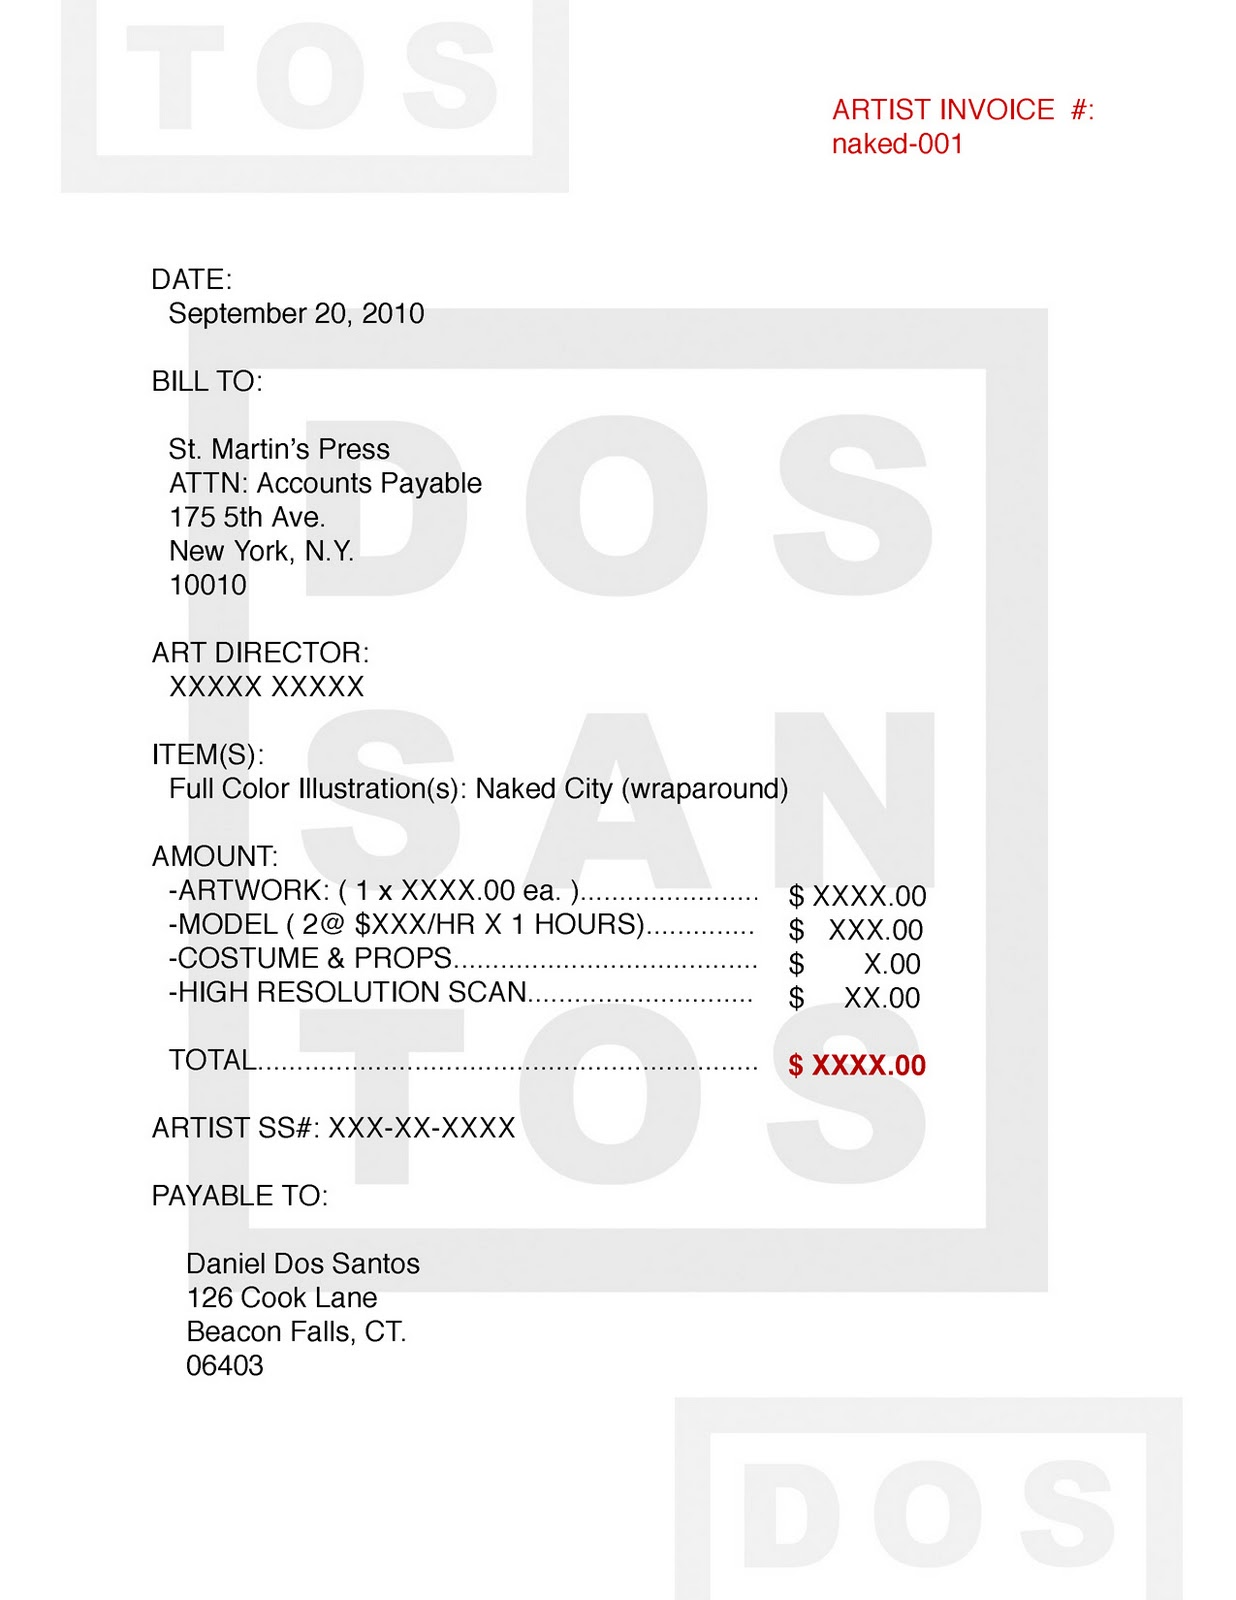 Carterusaus  Pleasant Muddy Colors Invoices With Exquisite I Believe That This Format Contains All The Pertinent Information That A Good Invoice Should Have And Can Serve As A Decent Template For Your Own With Alluring Painting Invoice Template Also Invoice And Receipt In Addition Invoice App For Ipad And Invoice Express As Well As Proforma Invoice Sample Additionally Purchase Order Invoice From Muddycolorsblogspotcom With Carterusaus  Exquisite Muddy Colors Invoices With Alluring I Believe That This Format Contains All The Pertinent Information That A Good Invoice Should Have And Can Serve As A Decent Template For Your Own And Pleasant Painting Invoice Template Also Invoice And Receipt In Addition Invoice App For Ipad From Muddycolorsblogspotcom